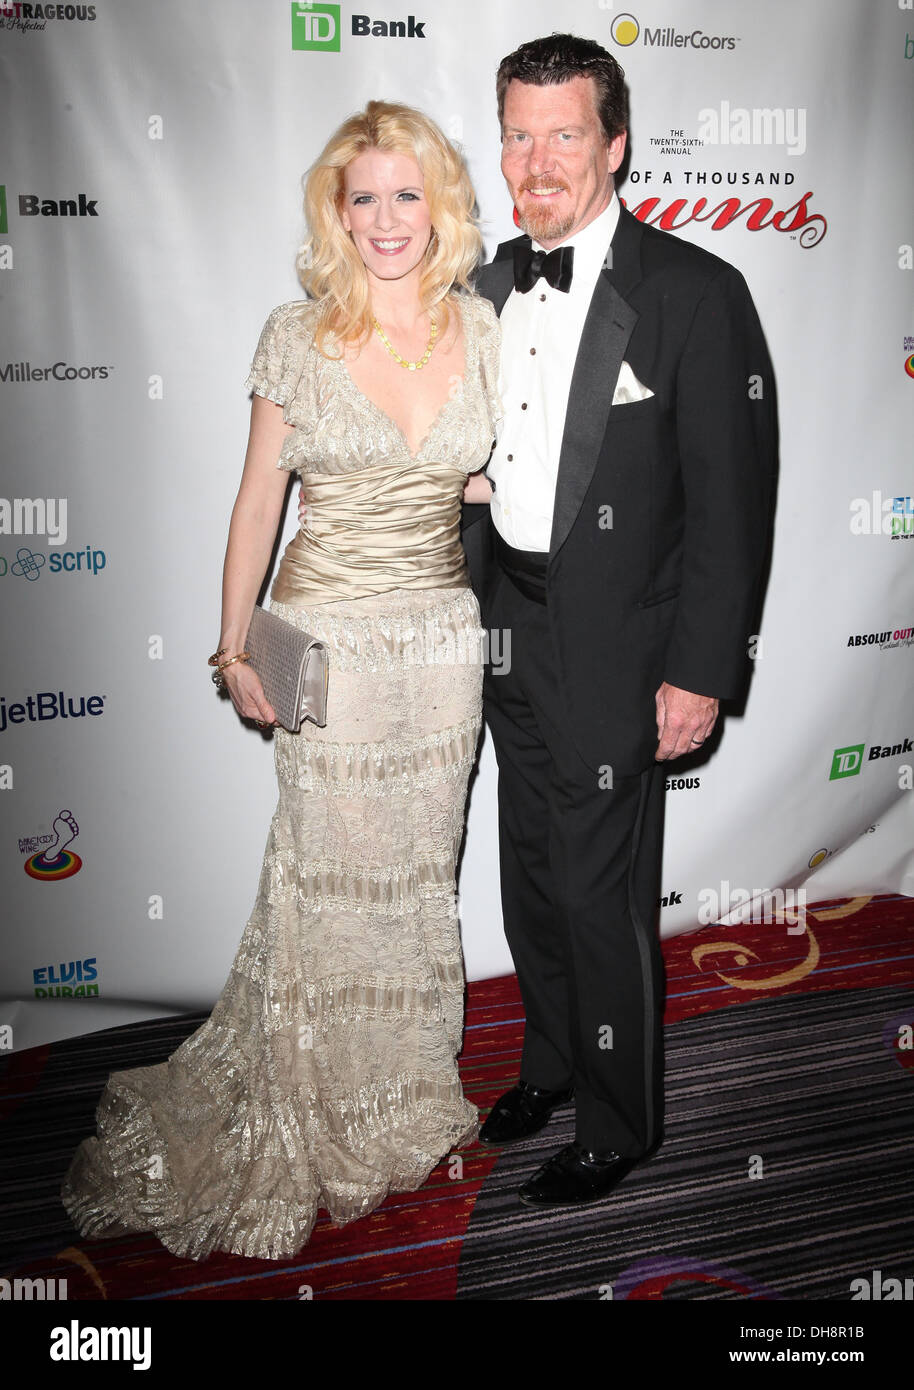 Alex McCord 26th Annual \'Night Of A Thousand Gowns\' at Marriott ...